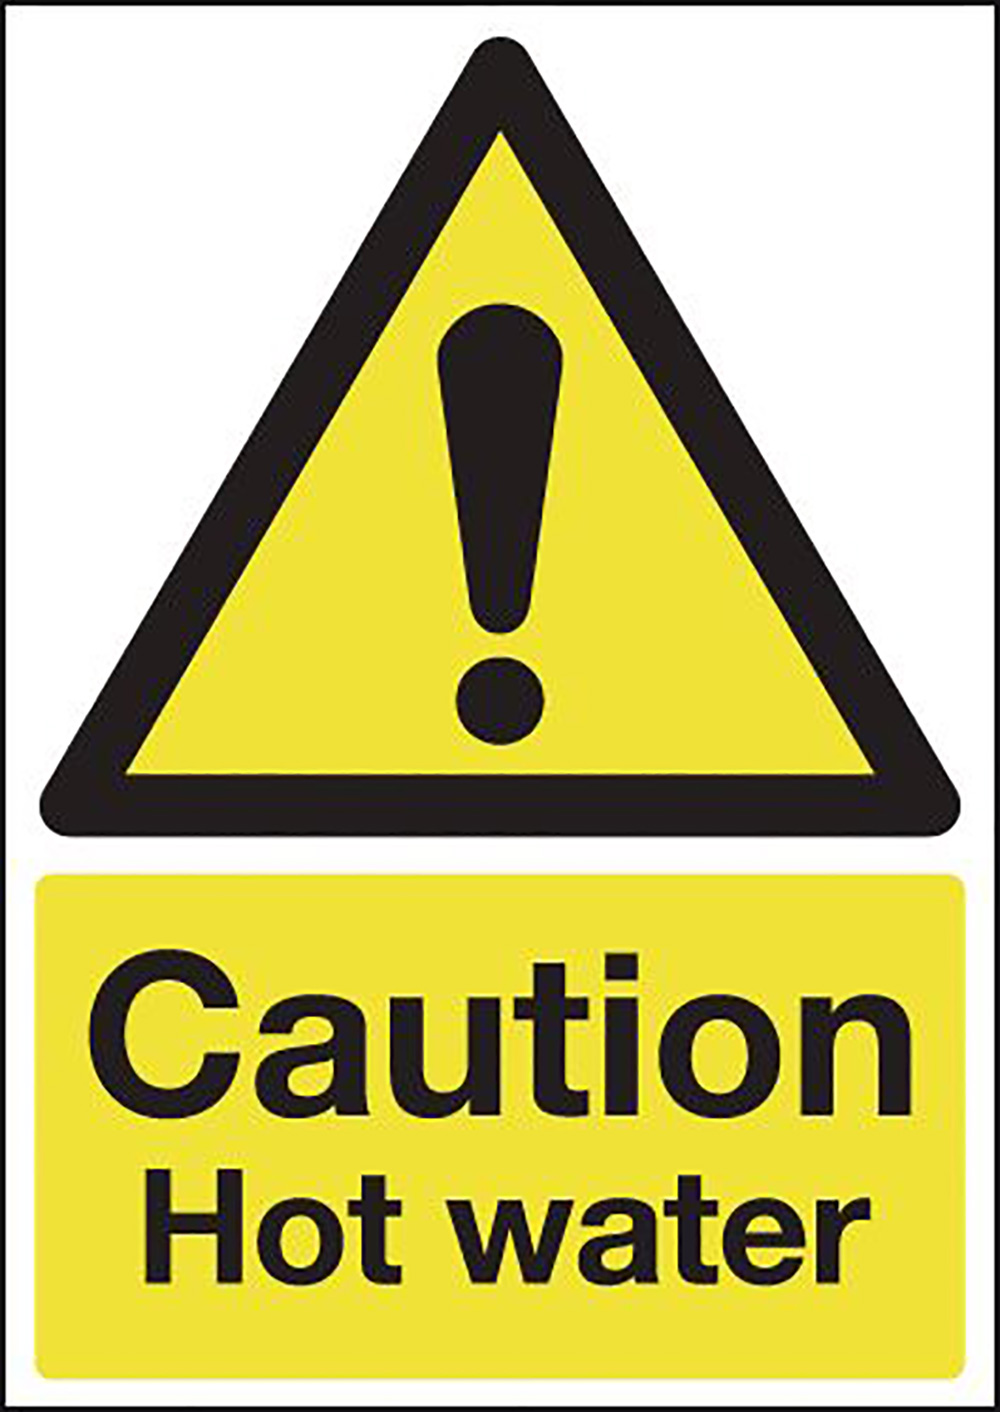 Caution Hot Water 210x148mm Self Adhesive Vinyl Safety Sign